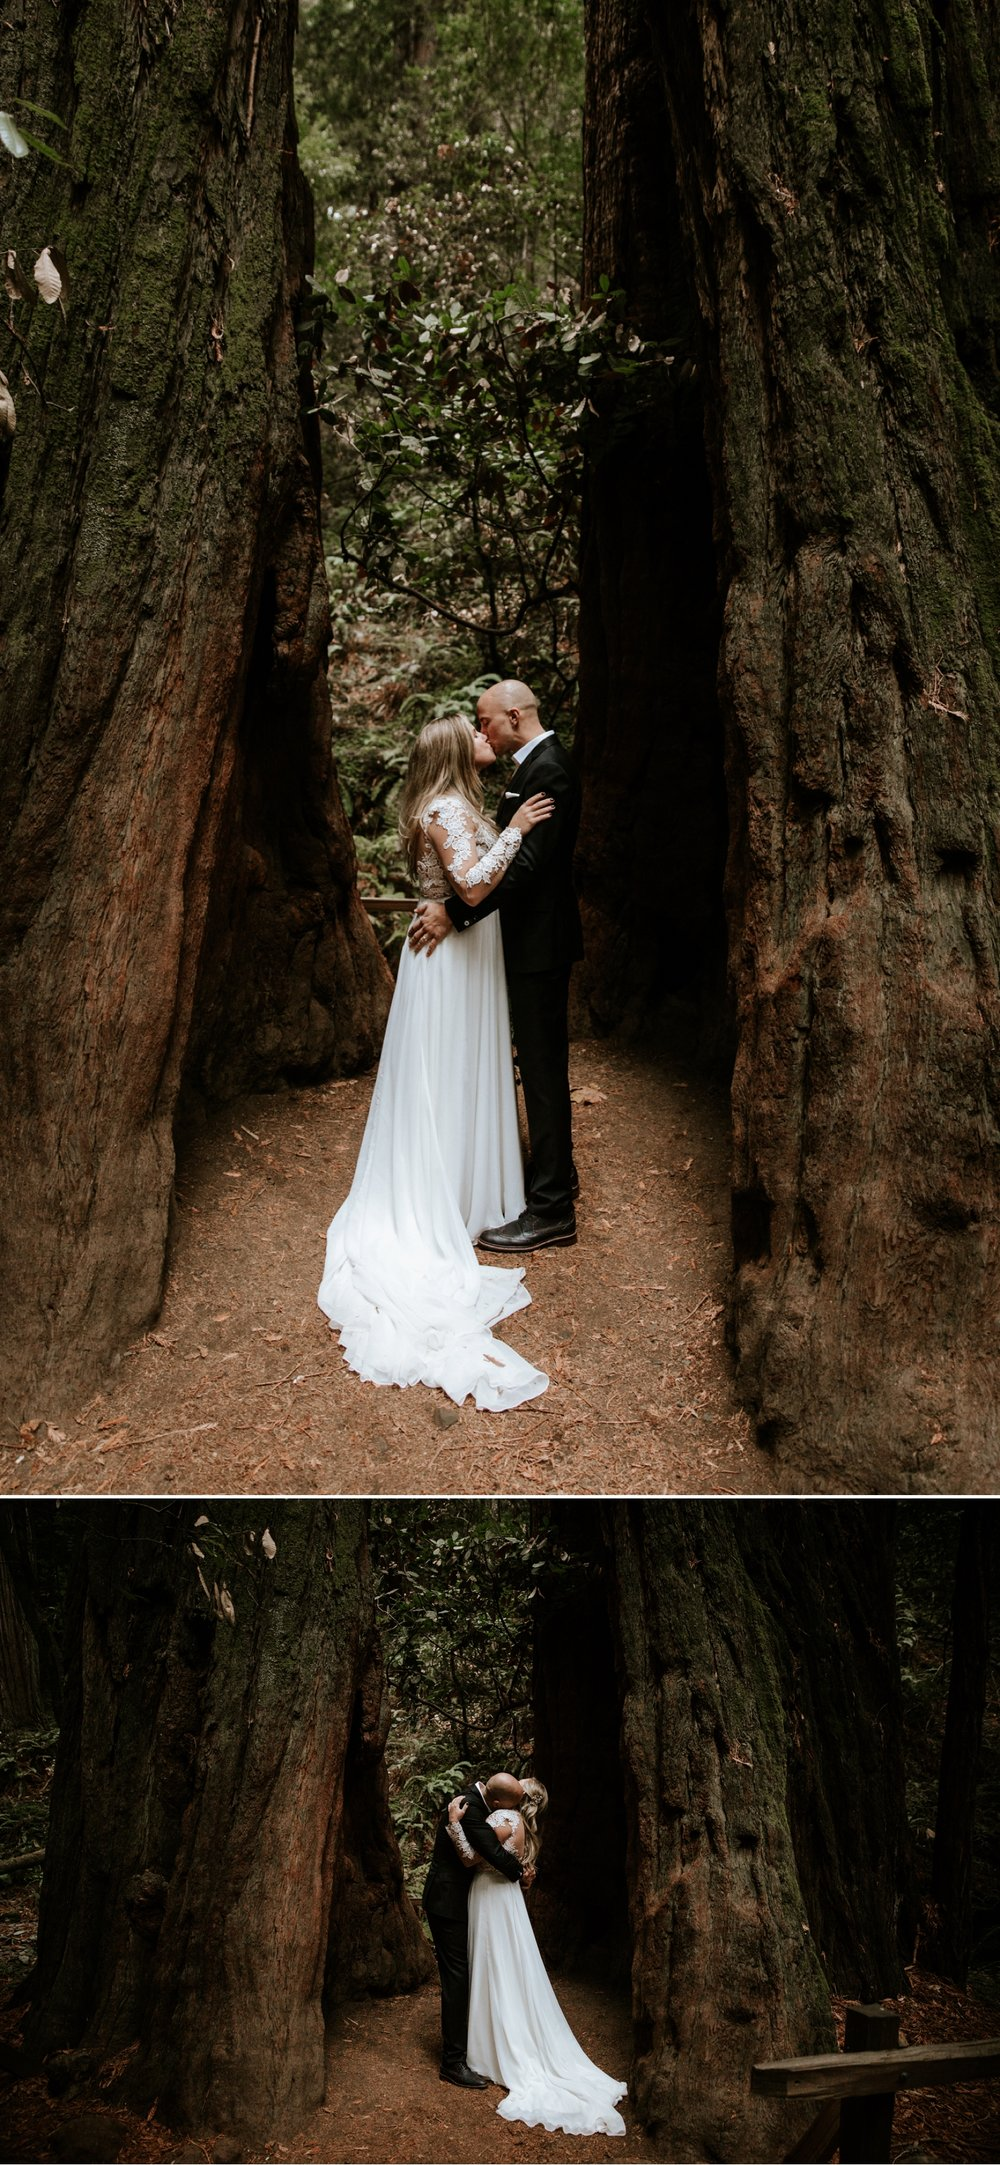 hannah-nick-intimate-muir-woods-wedding-25.jpg